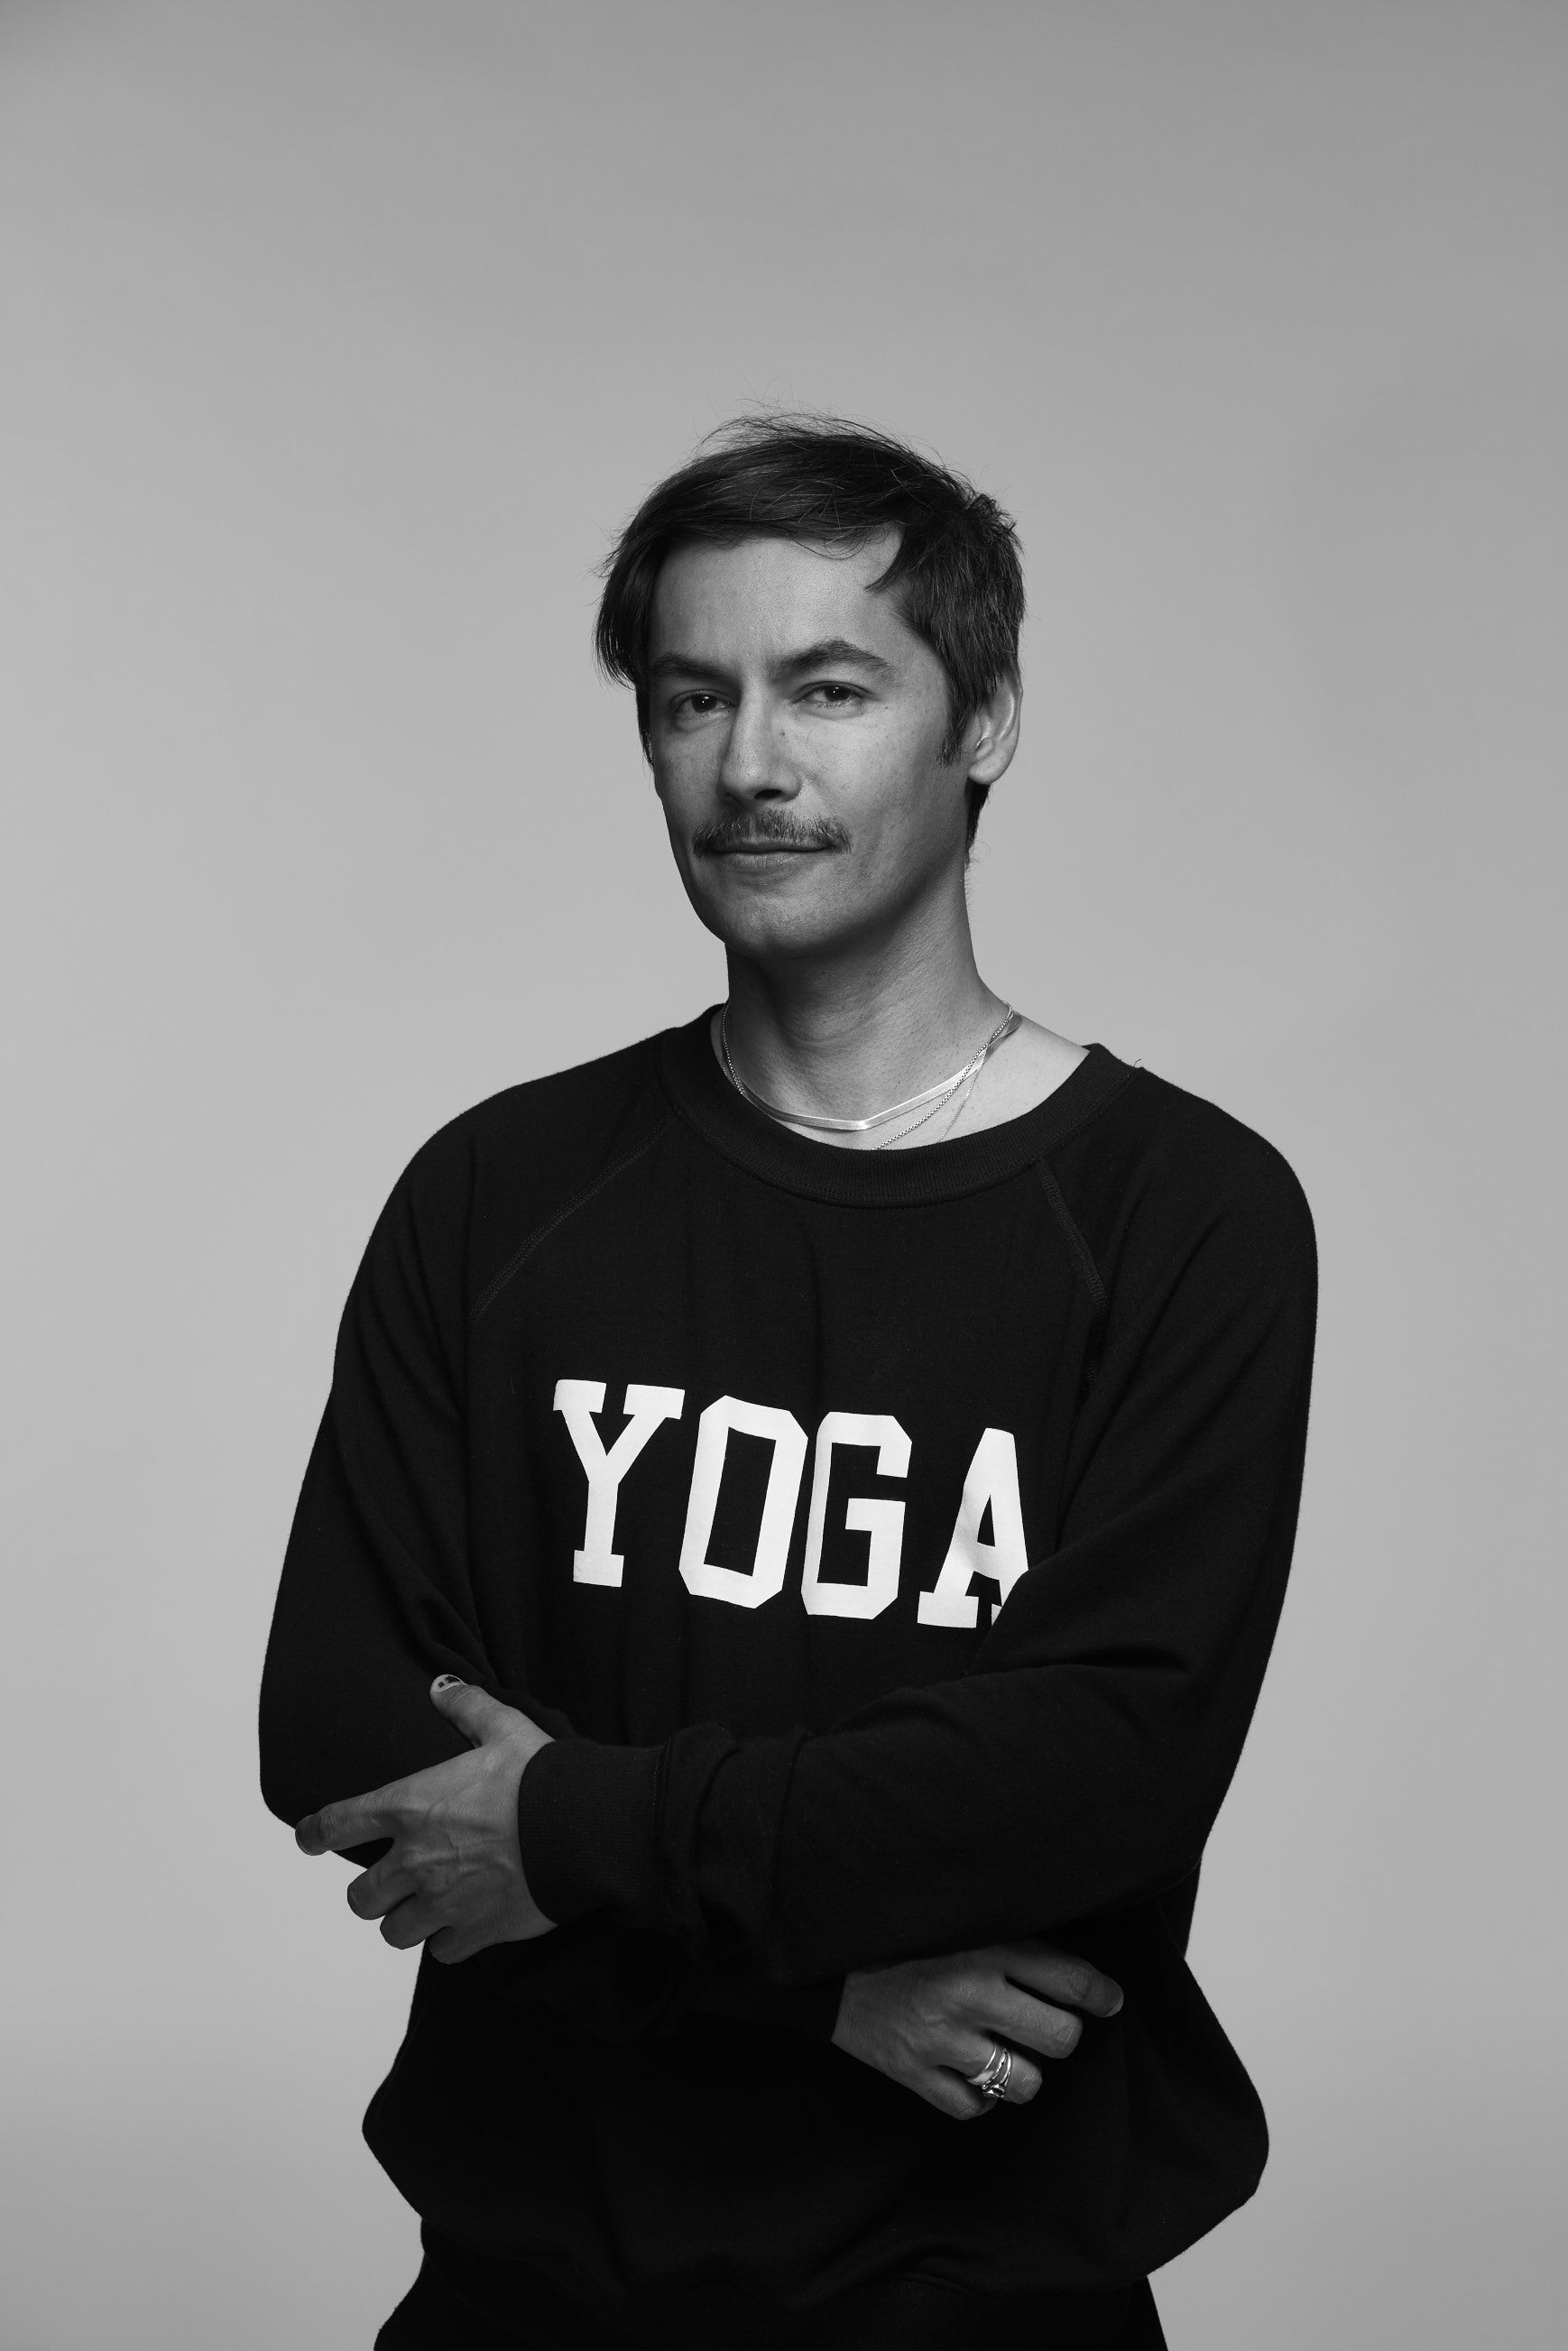 MEN'S YOGA SWEATSHIRT WHITE ON BLACK